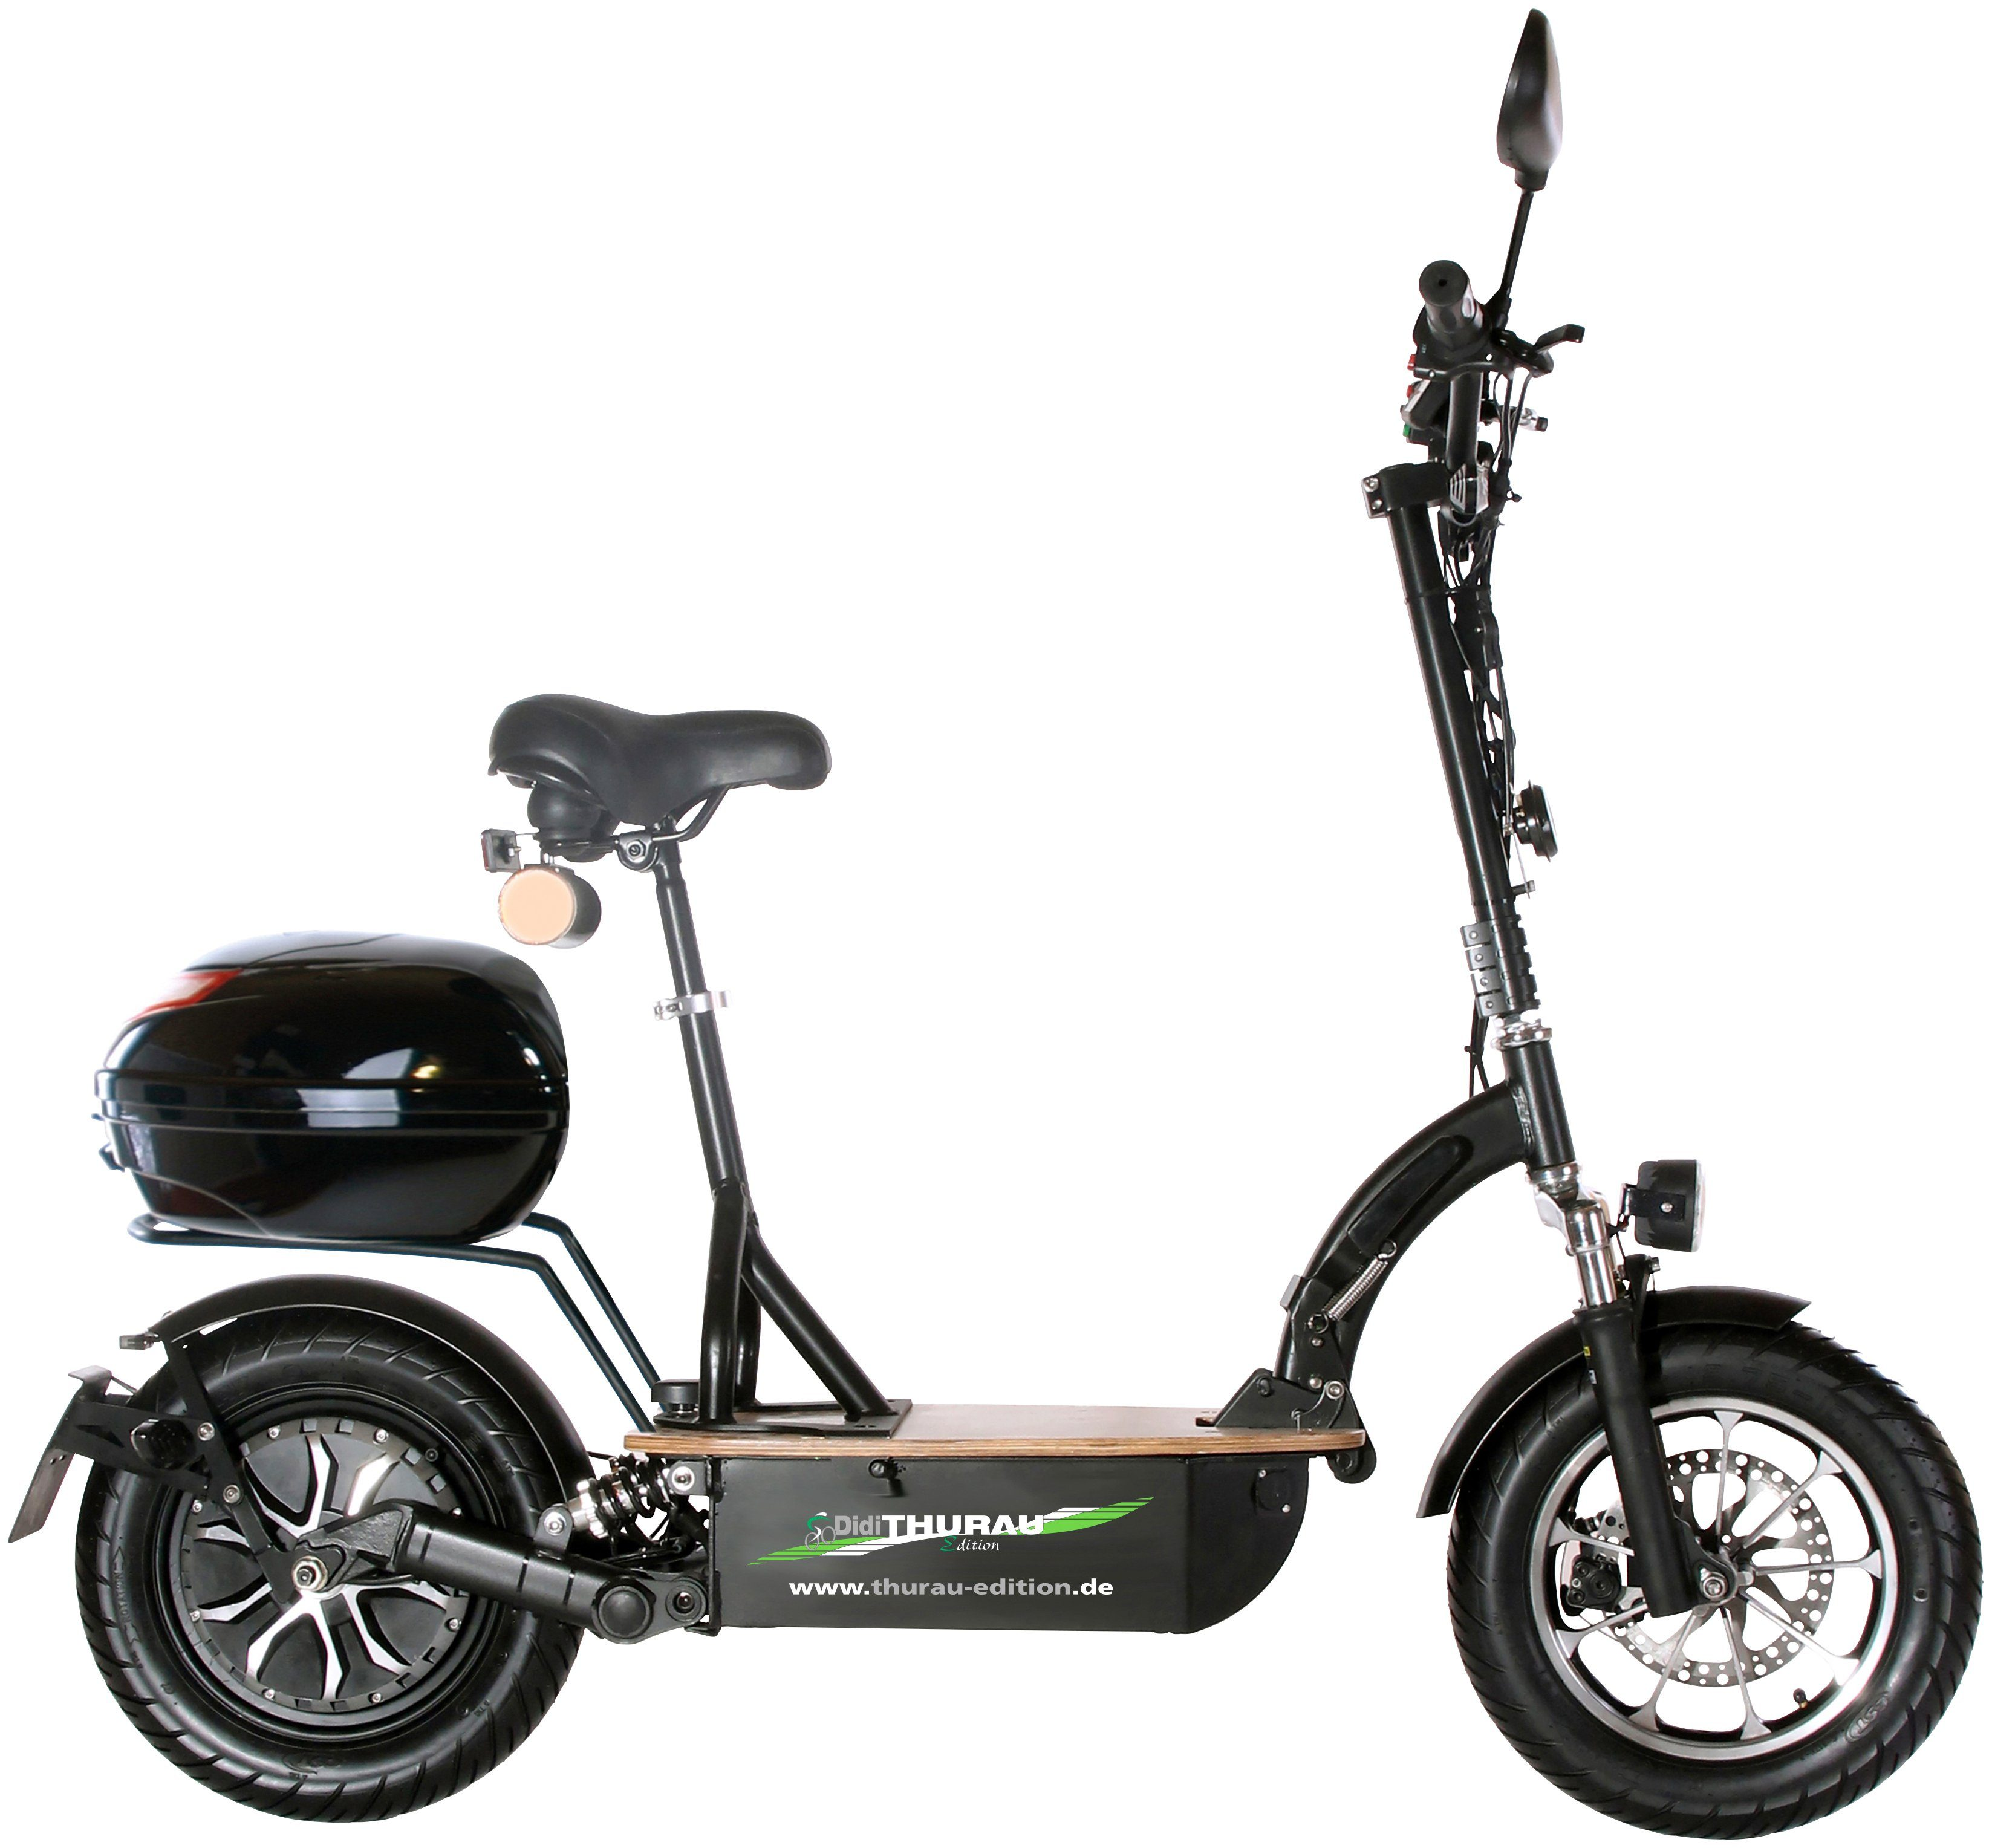 DIDI THURAU E-Scooter »Eco-Tourer Safety Plus RS«, 20 km/h, Inkl. Rundum-Sorglos-Paket